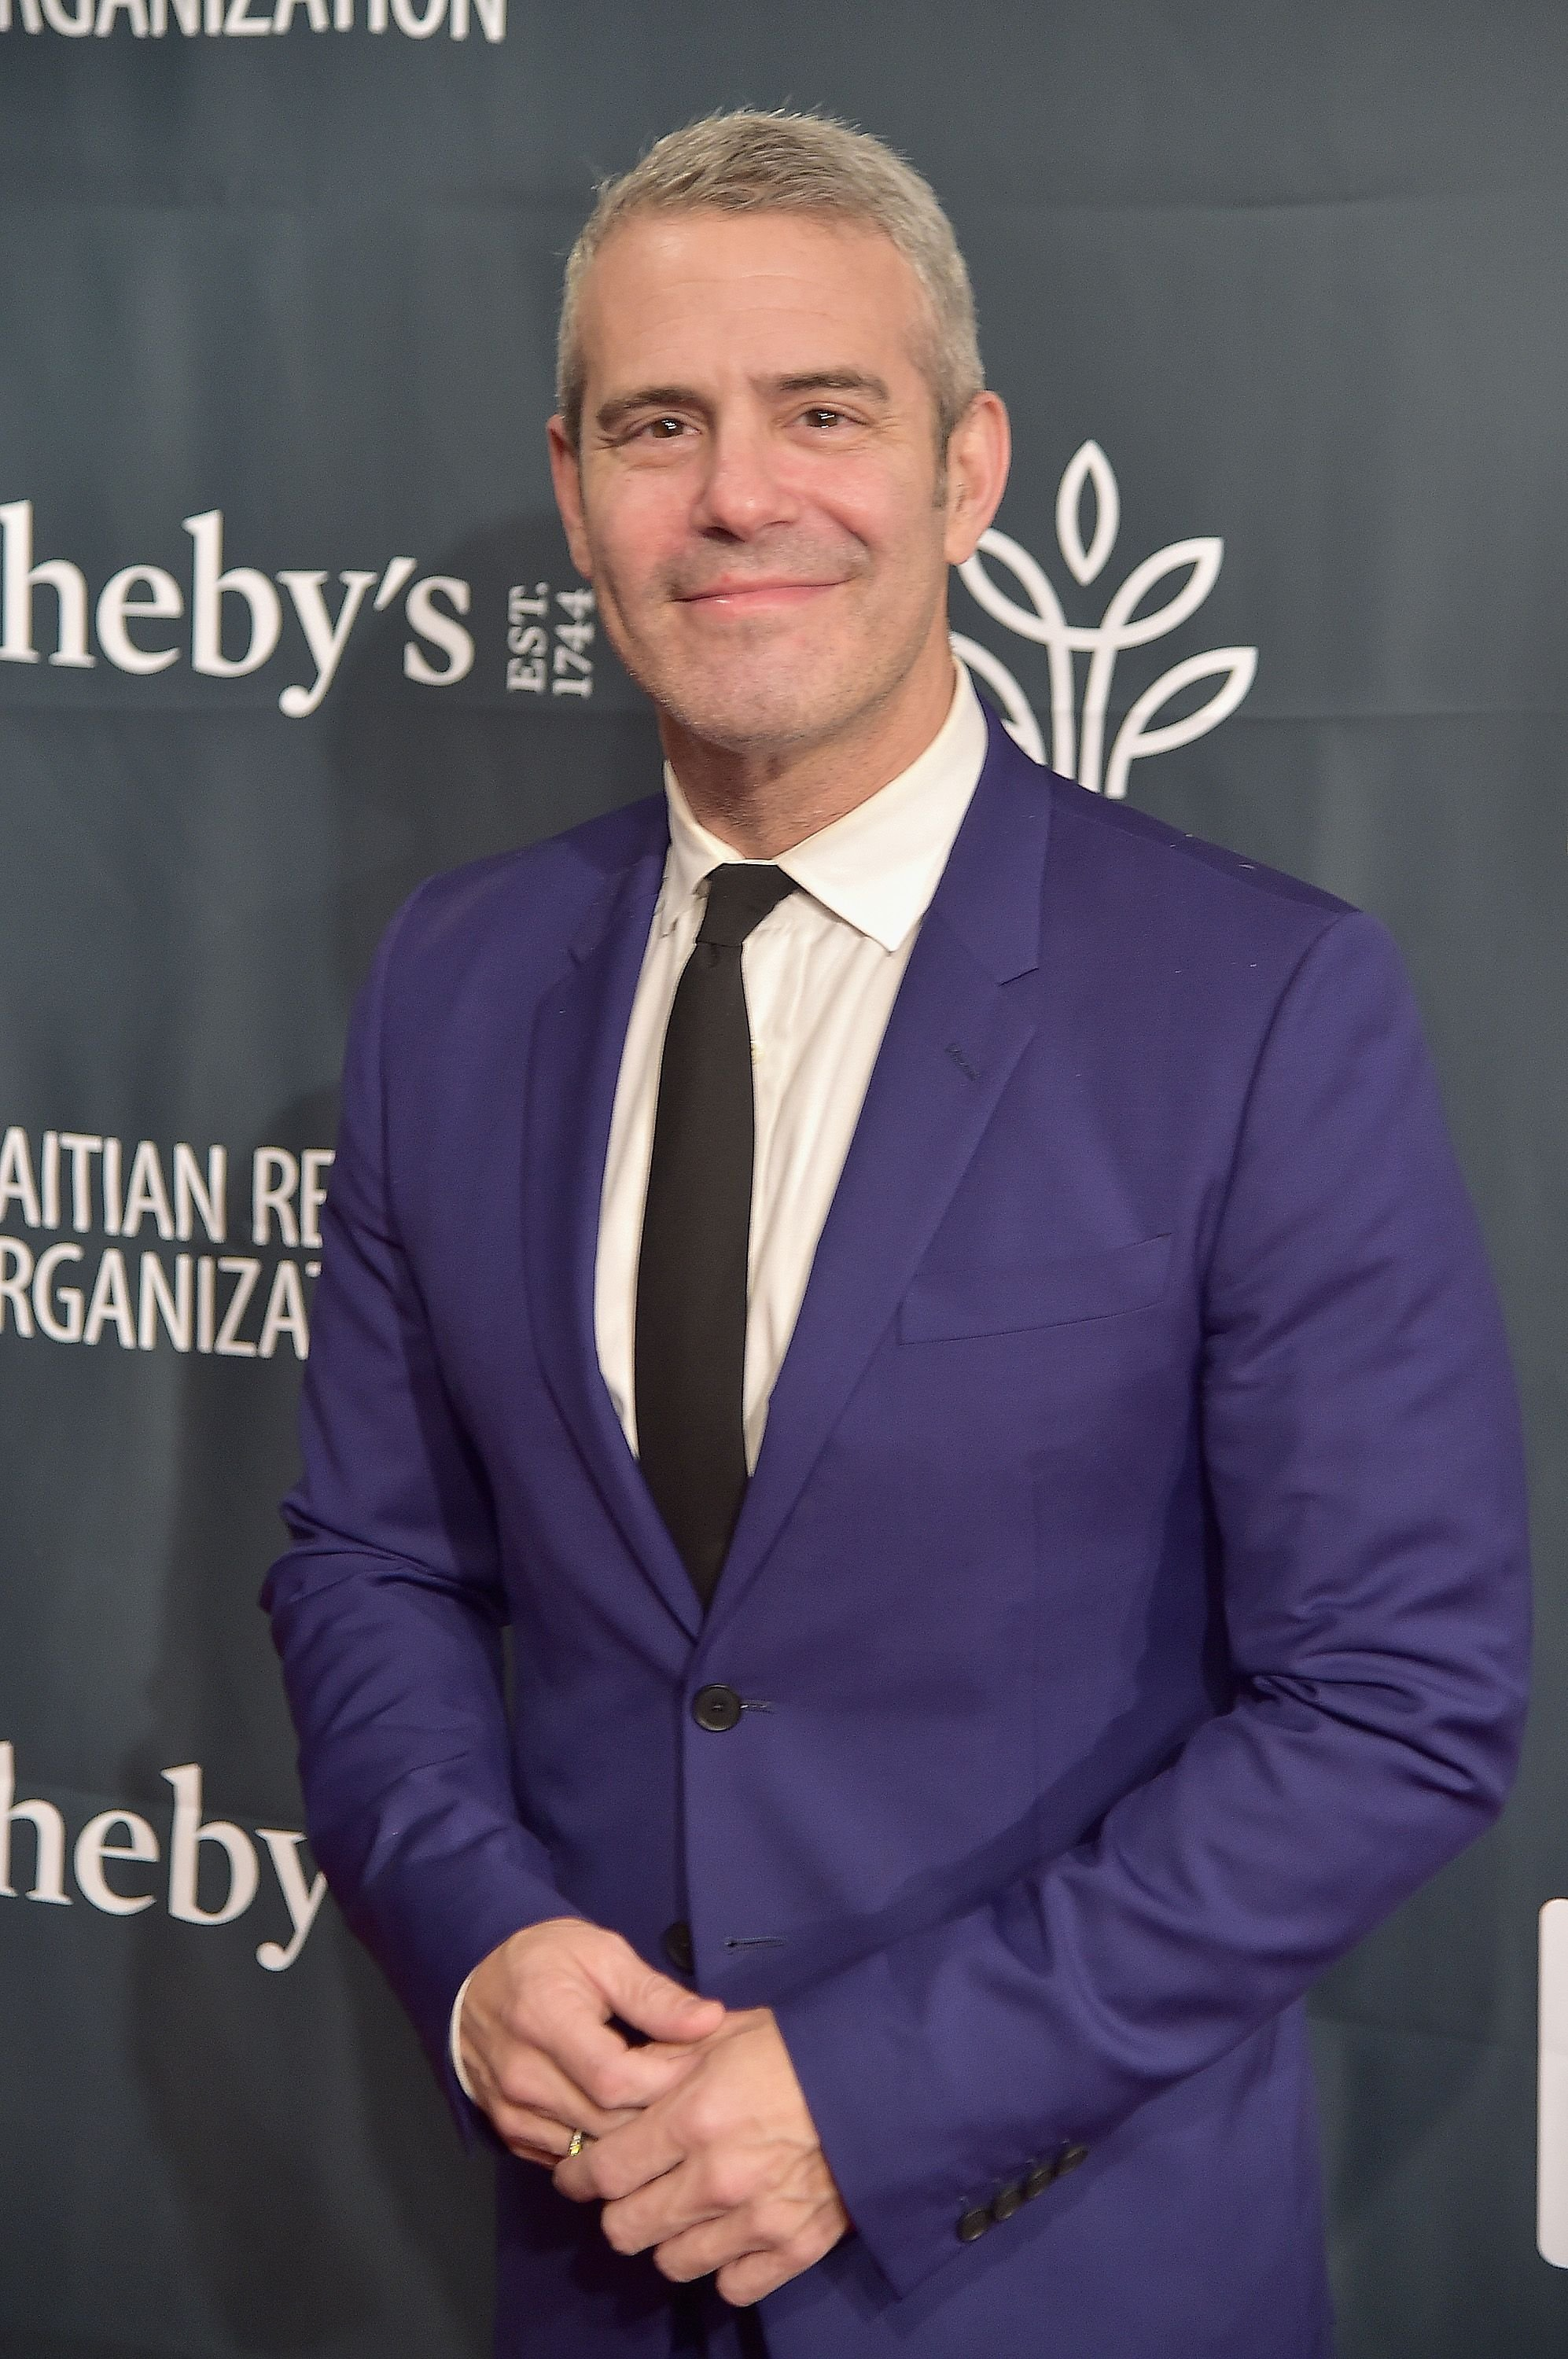 TV personality Andy Cohen at Sean Penn & Friends HAITI TAKES ROOT: A Benefit Dinner & Auction to Reforest & Rebuild Haiti to Support J/P Haitian Relief Organization at Sotheby's on May 5, 2017 | Photo: Getty Images